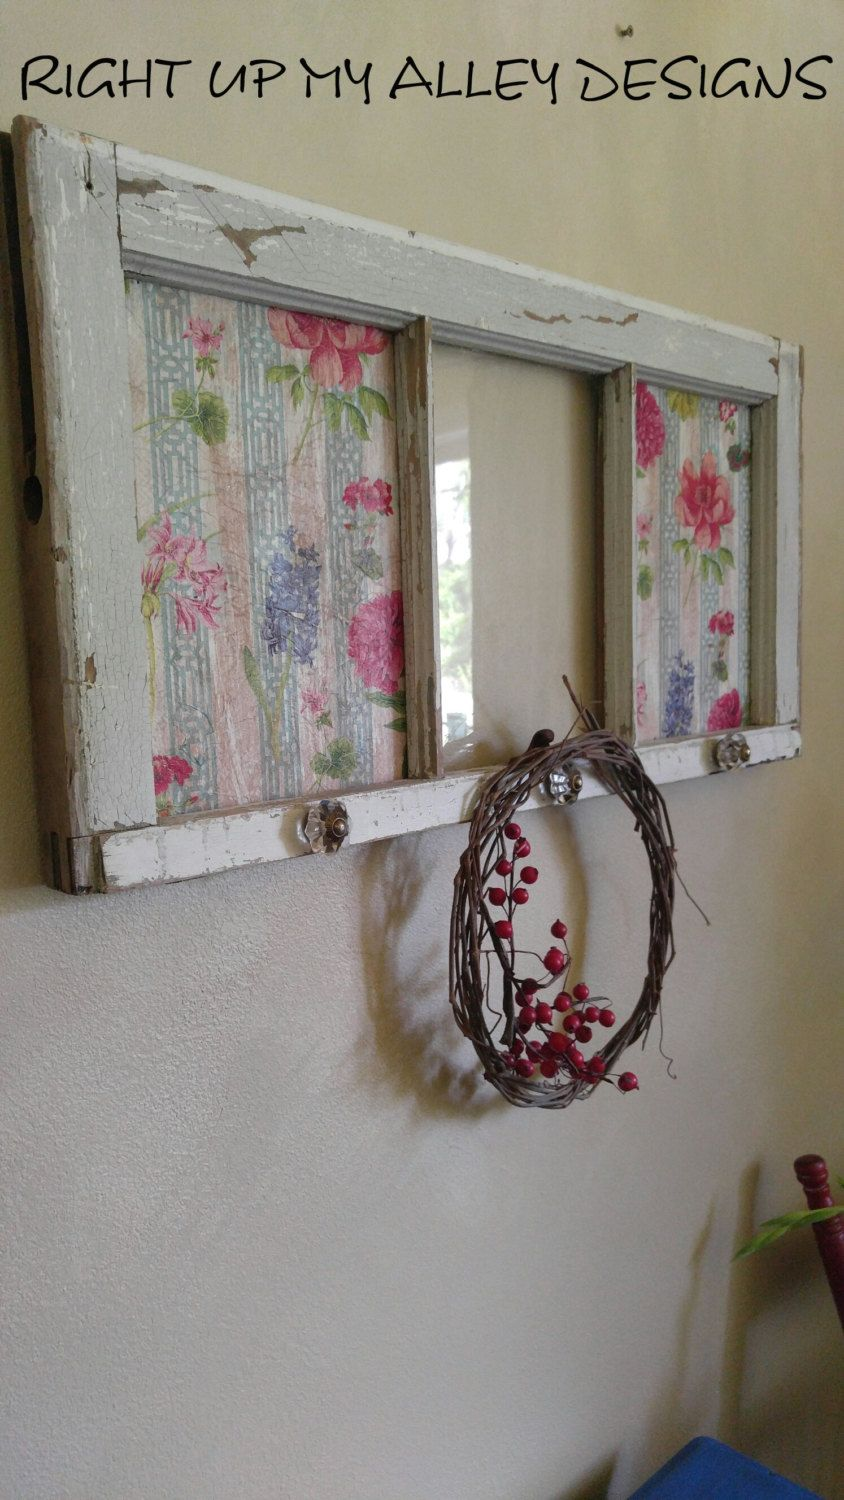 3 pane window diy this pane window art would fit nicely with shabby chic or bohemian decor the end panes wood inserts have floral paper decoupaged for fun flair and window art wall antique window